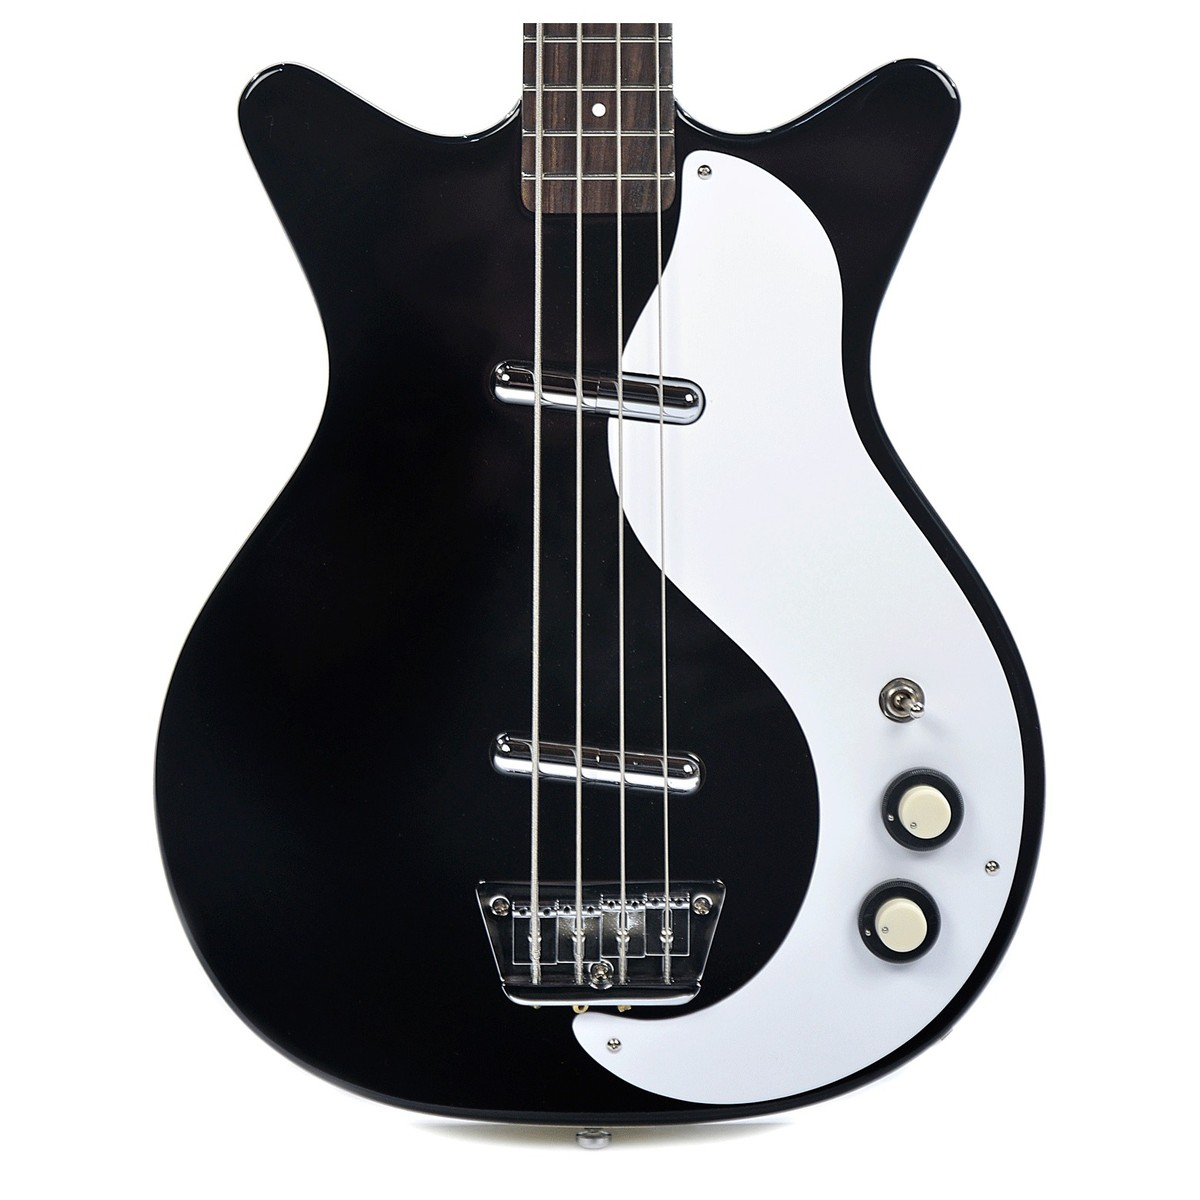 danelectro 59dc long scale bass black rh gear4music com Danelectro 59 Reissue Lefty Jimmy Page Danelectro 59